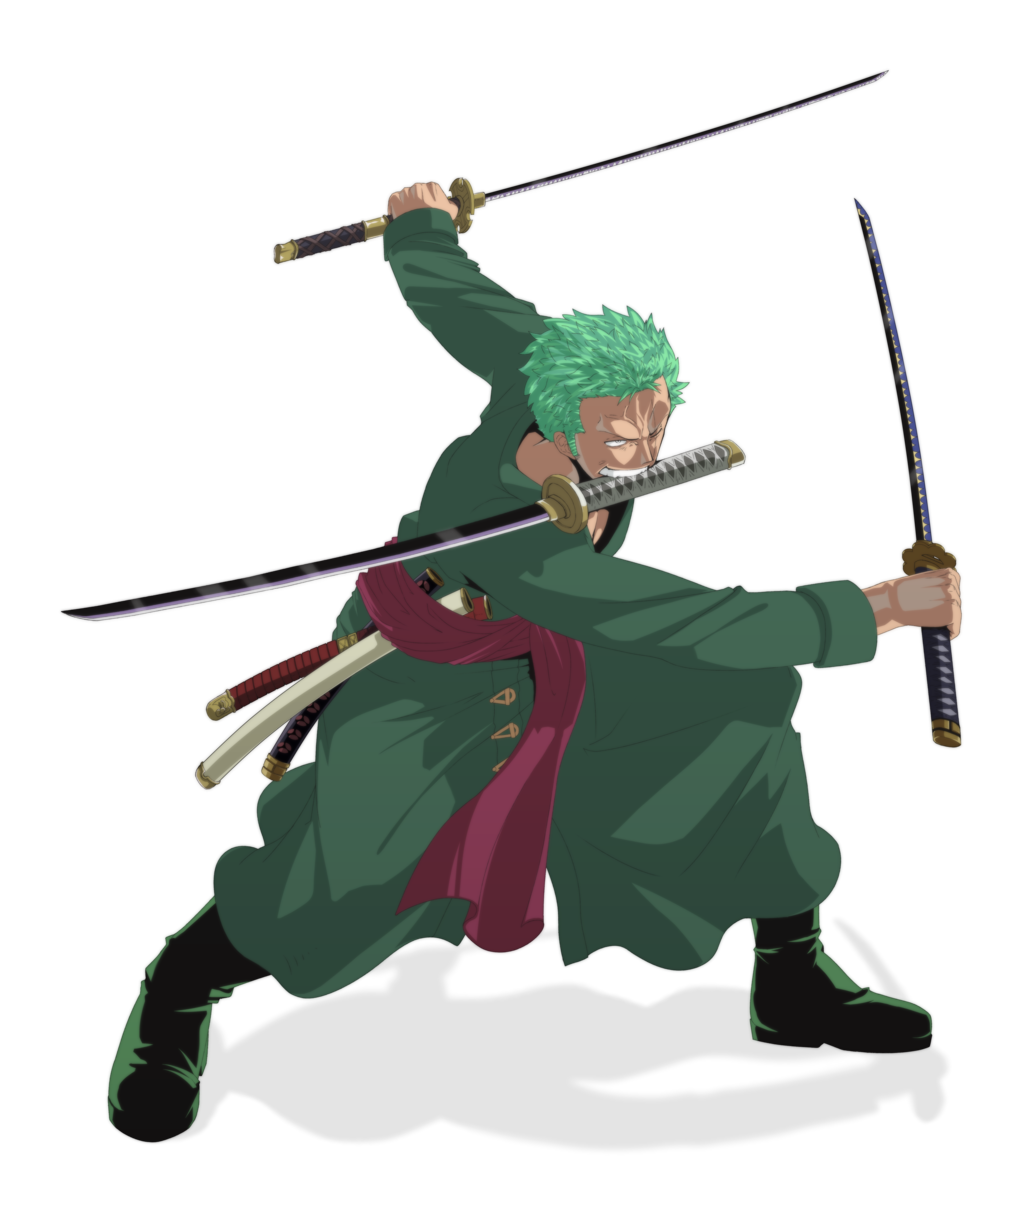 Zoro New World Png 5 Png Image